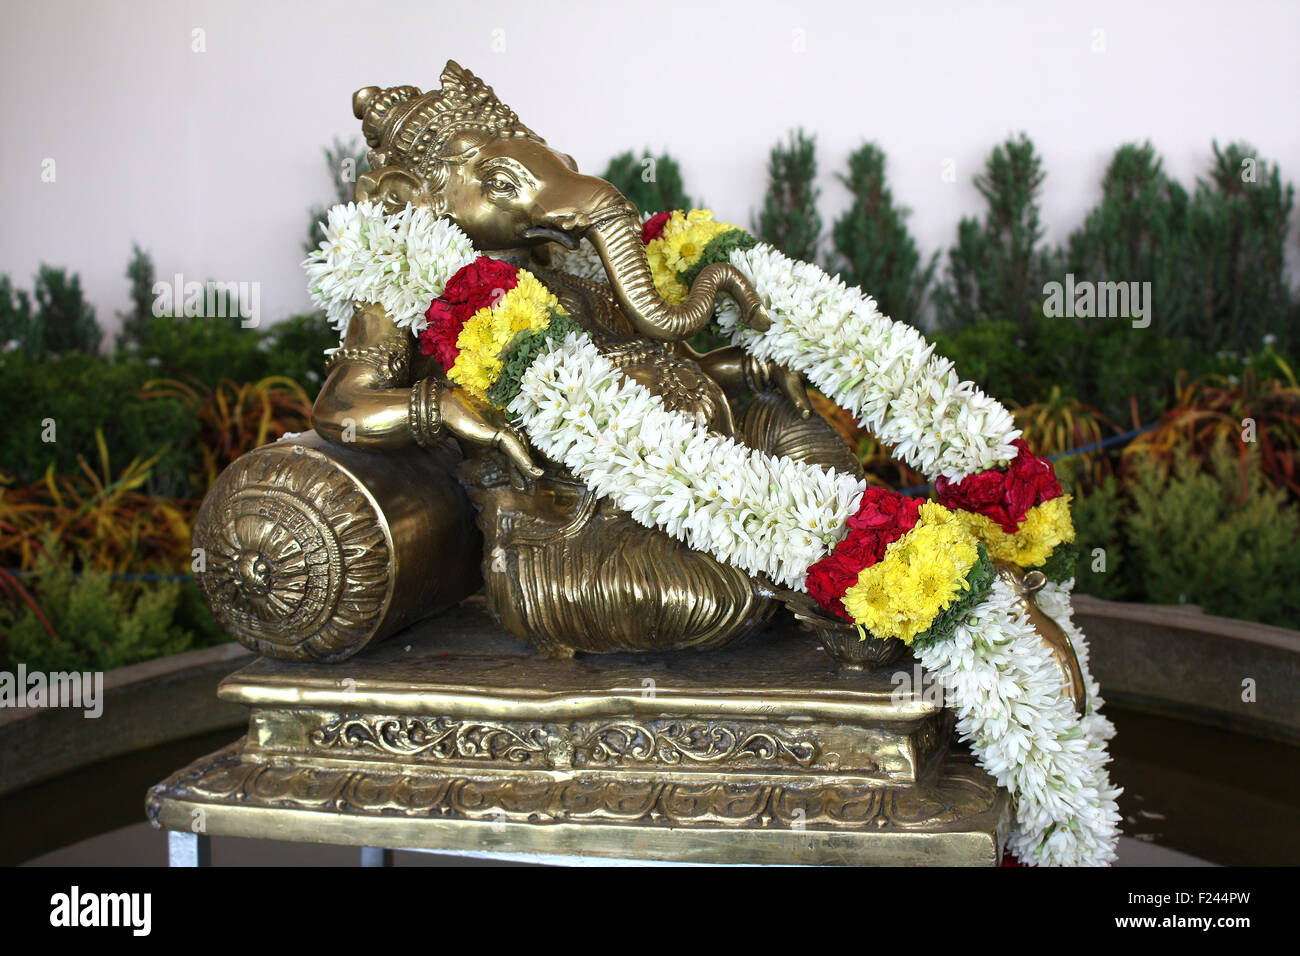 A metallic idol of lord Ganesha with flowers garland. - Stock Image